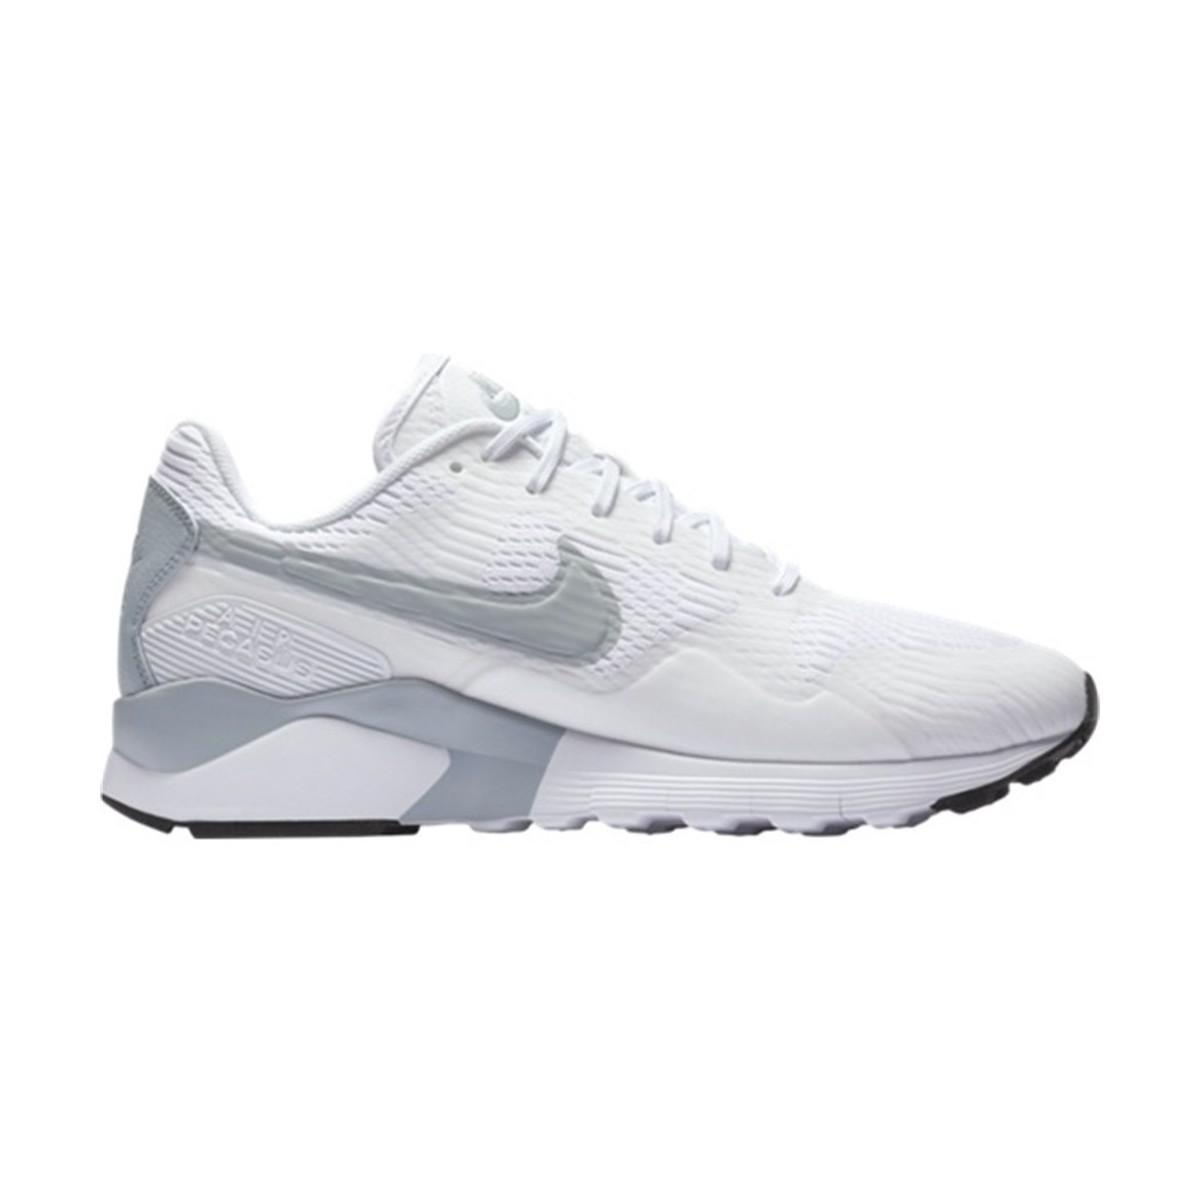 new arrival b15fd 4eb9e Nike Air Pegasus 9216 Women s Shoes (trainers) In Grey in Gray - Lyst